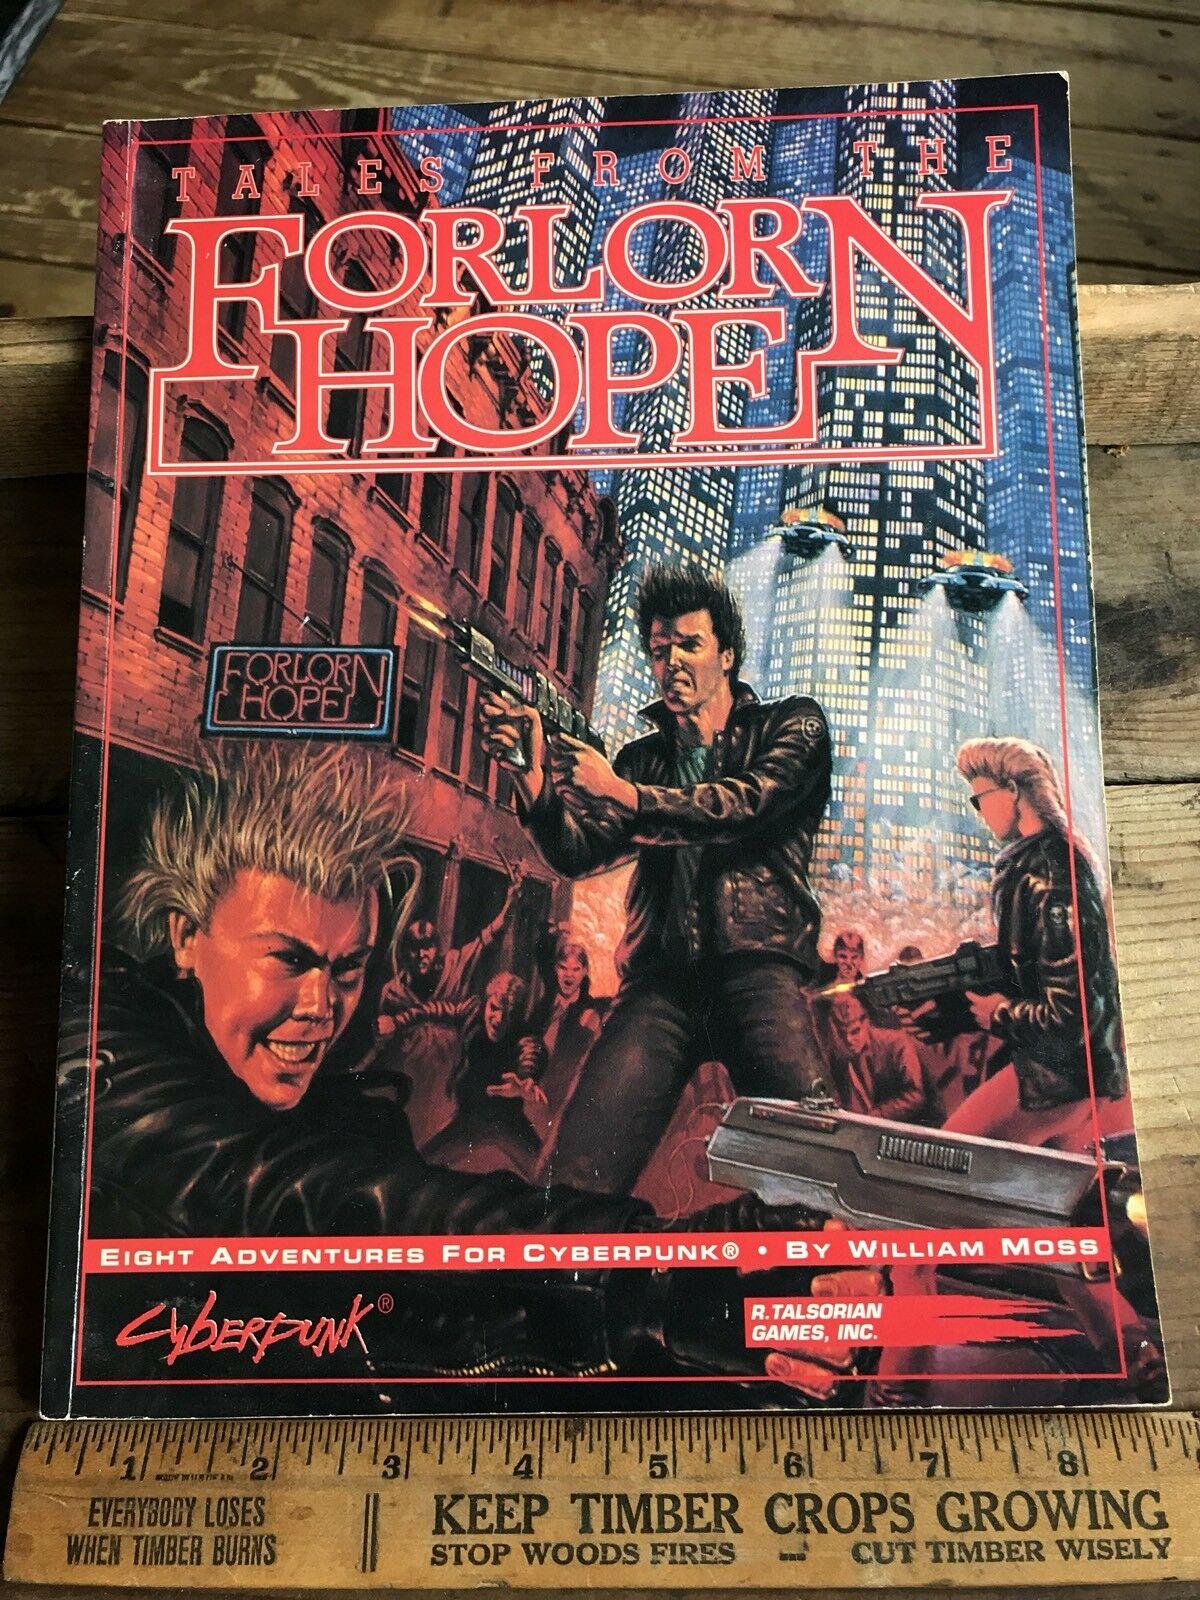 R. Talsorian Cyberpunk Tales from the Forlorn Hope Bar In Night city